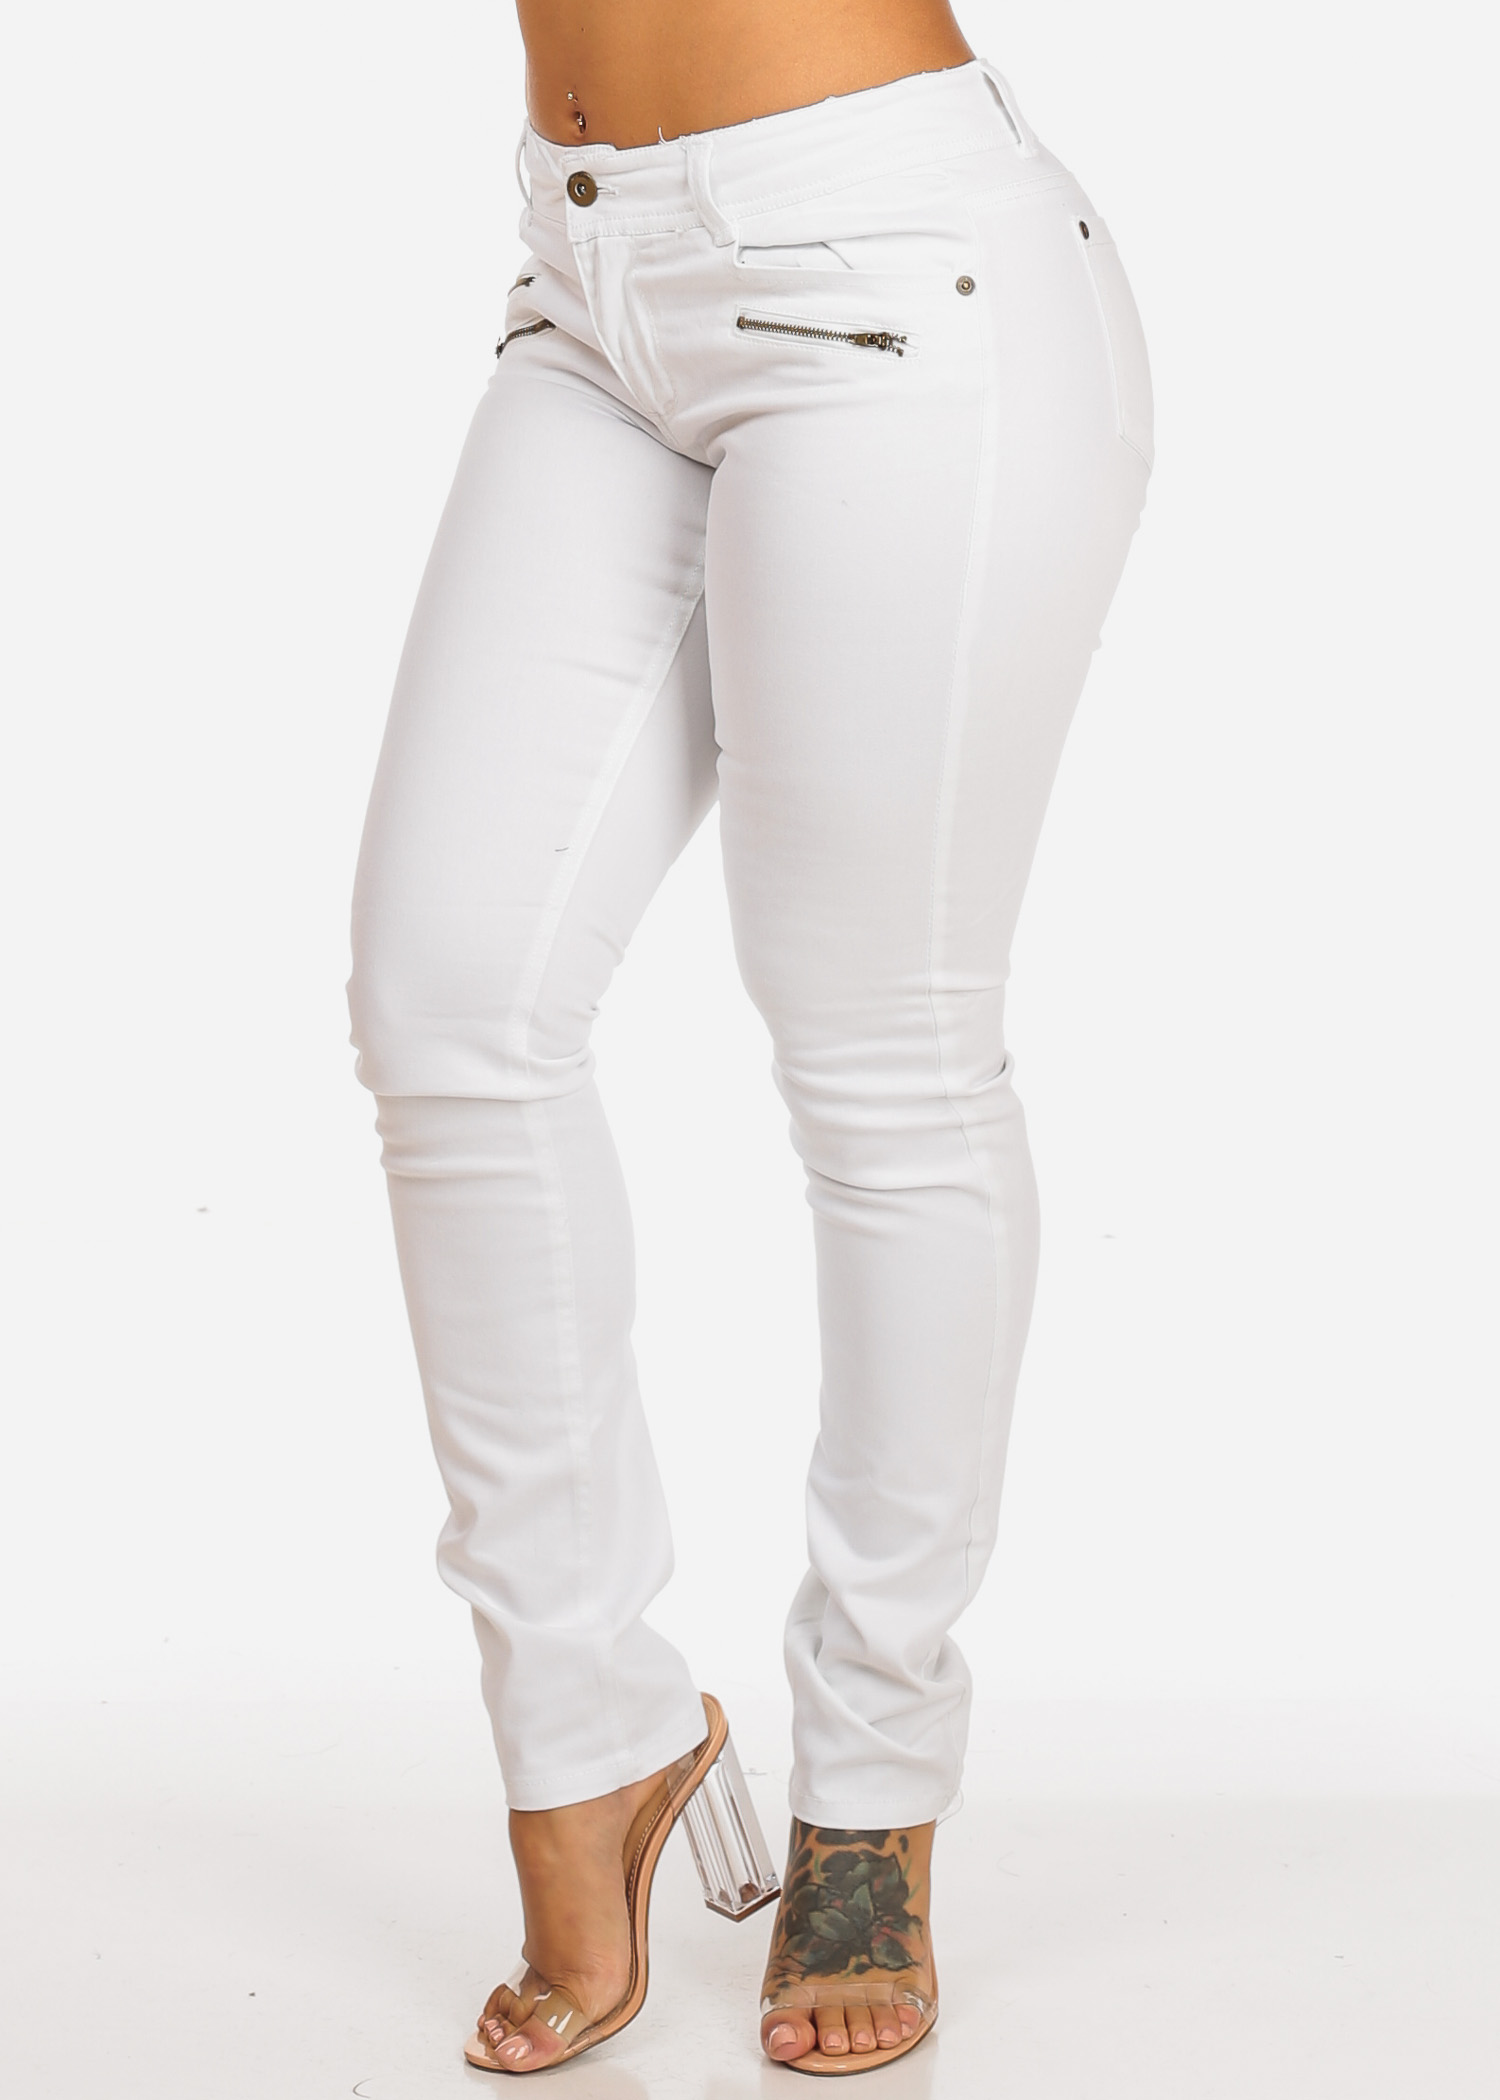 Womens Juniors Stylish Mid Rise One Button Size Zippers Solid White Skinny Jeans 10736M